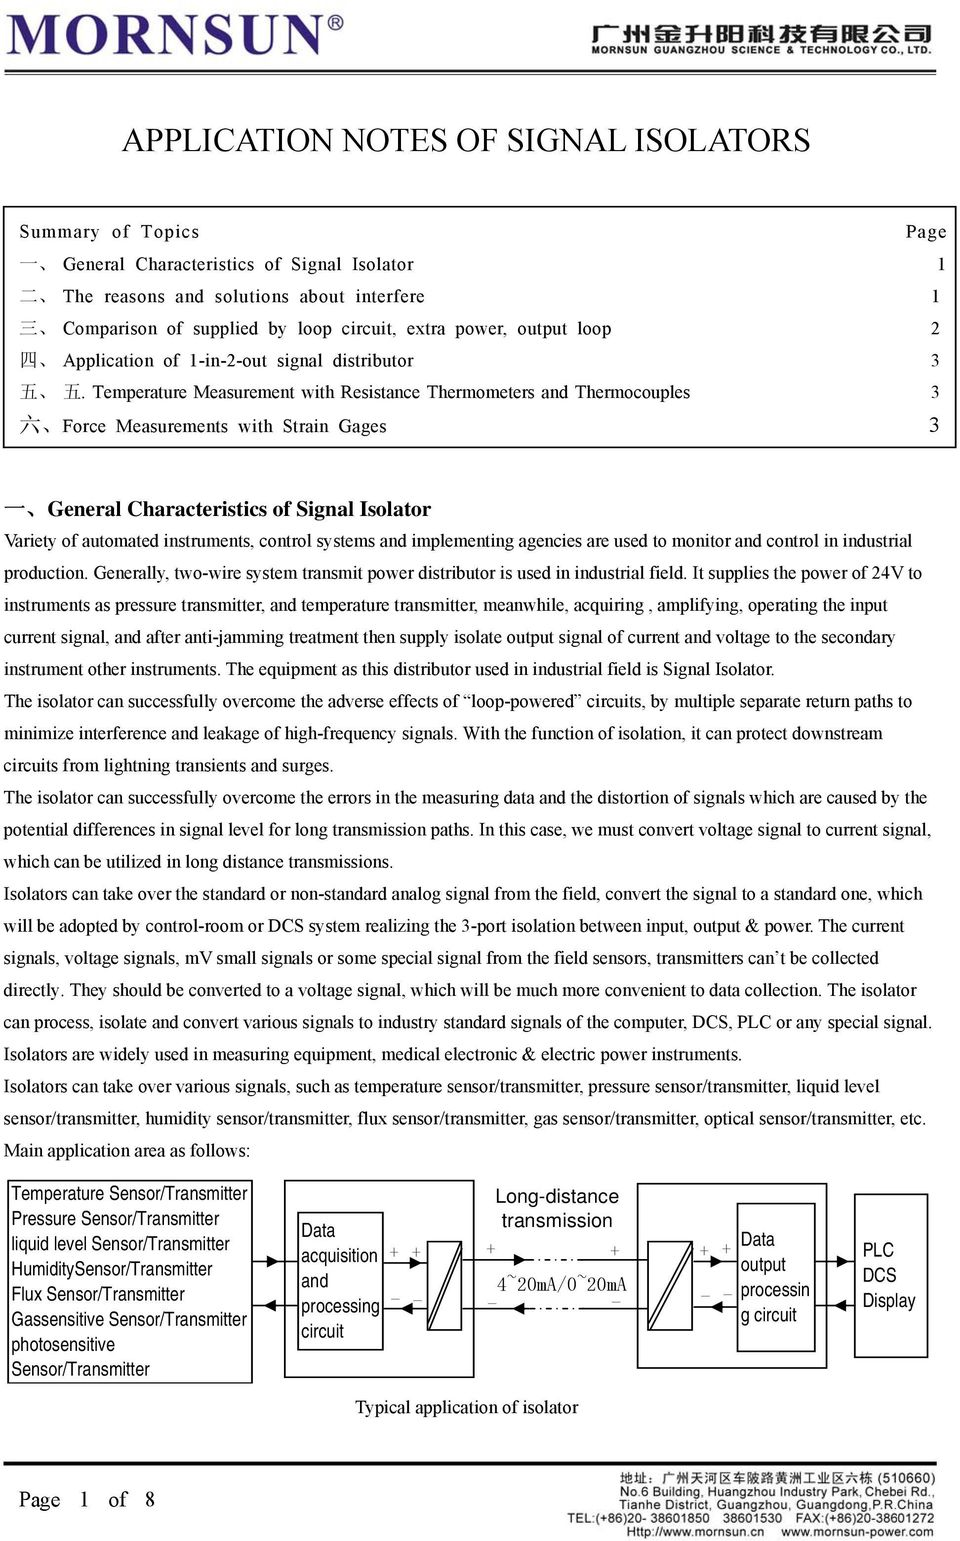 Application Notes Of Signal Isolators Pdf Resistance Thermometer Current Loop Transmitter Temperature Measurement With Thermometers And Thermocouples Force Measurements Strain Gages General Characteristics